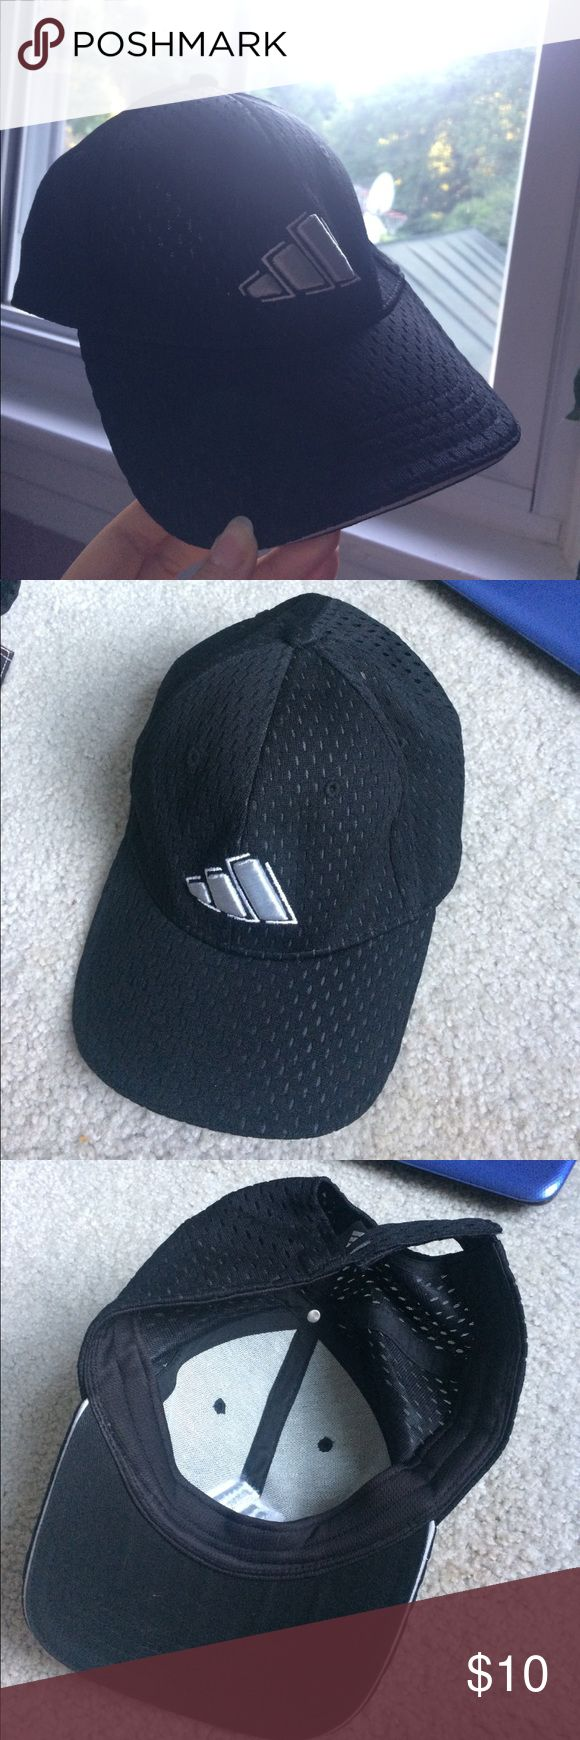 Adidas Baseball Cap Cute and old fashioned Adidas baseball cap. Perfect condition, no signs of wear. Great for summer.🌻 adidas Accessories Hats